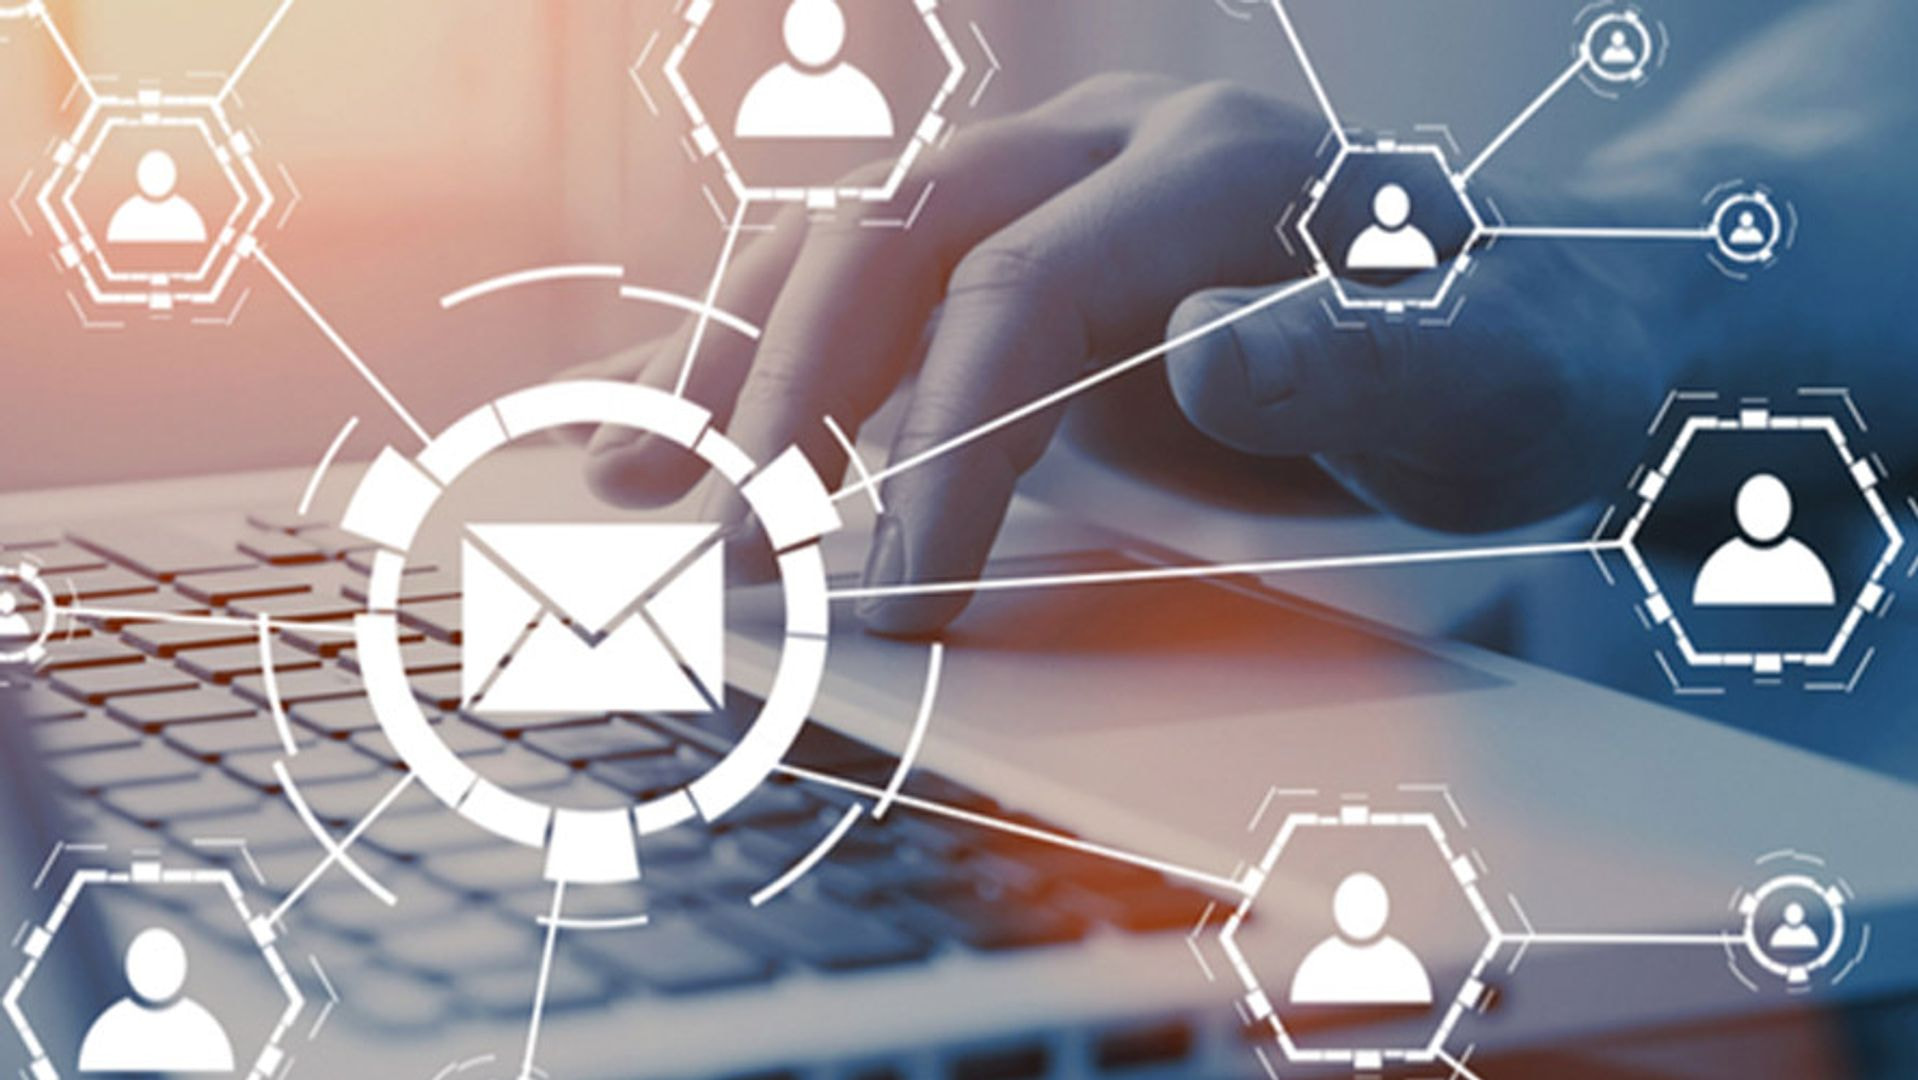 10 Essential Email Marketing Tips